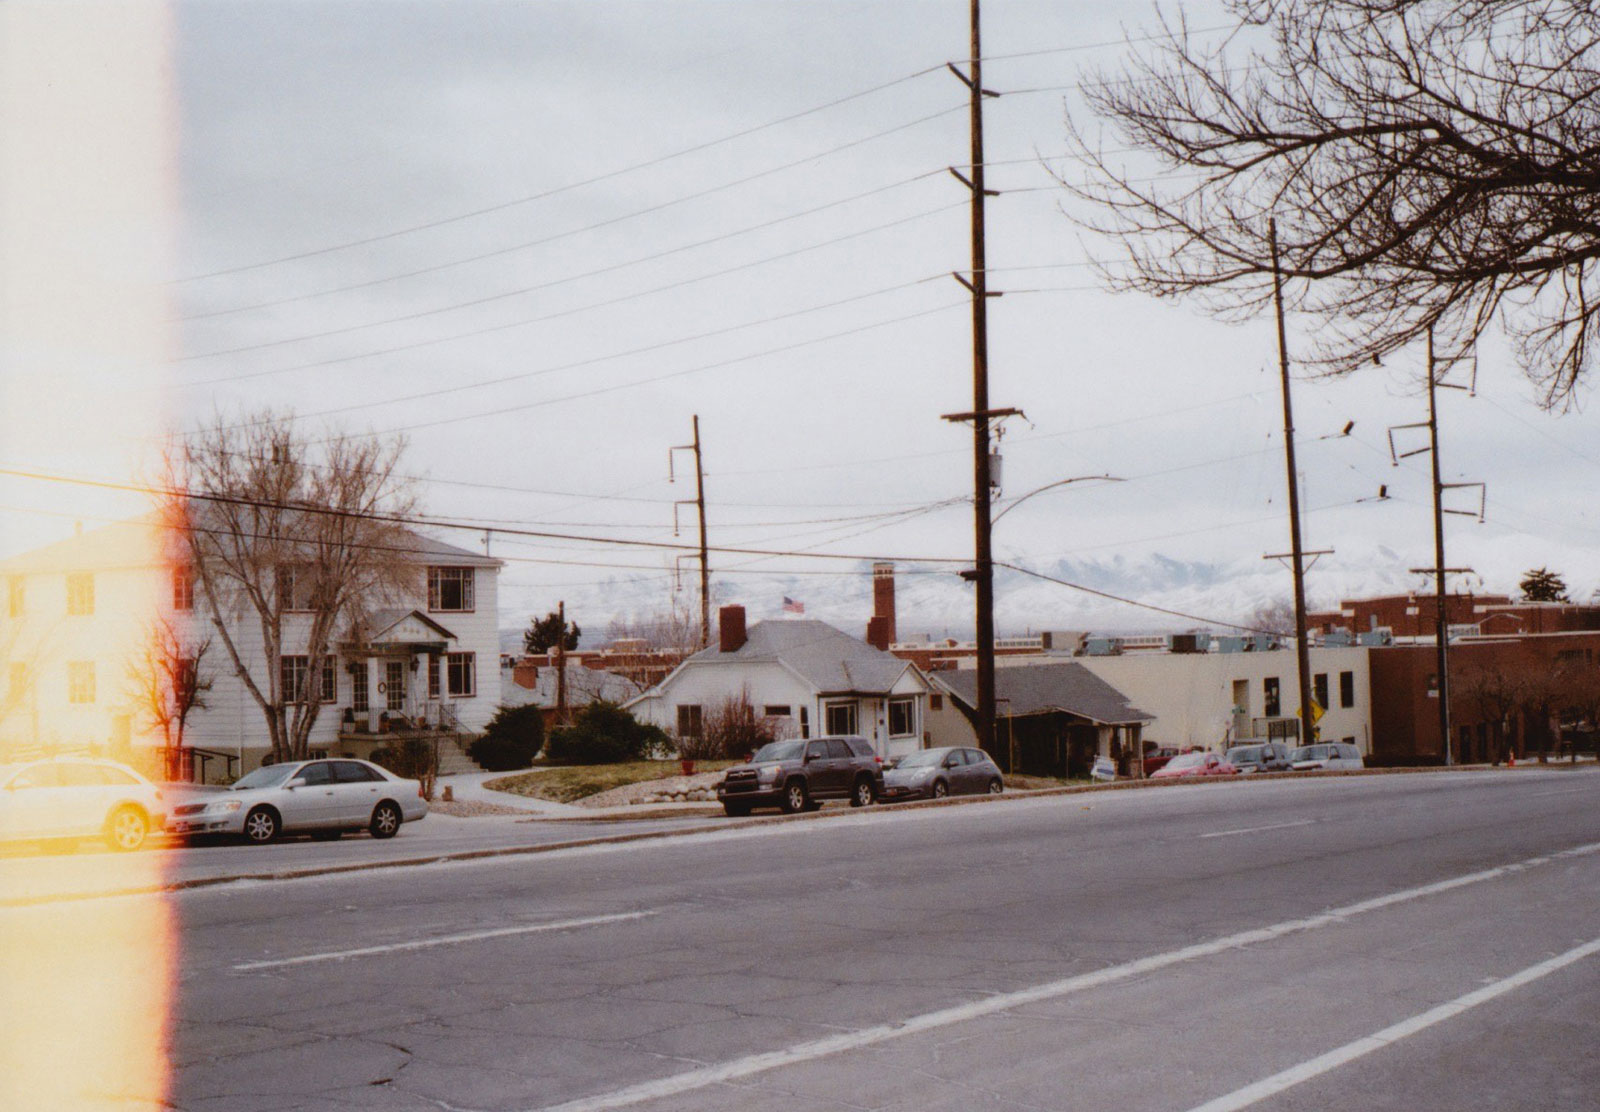 Mountains behind street